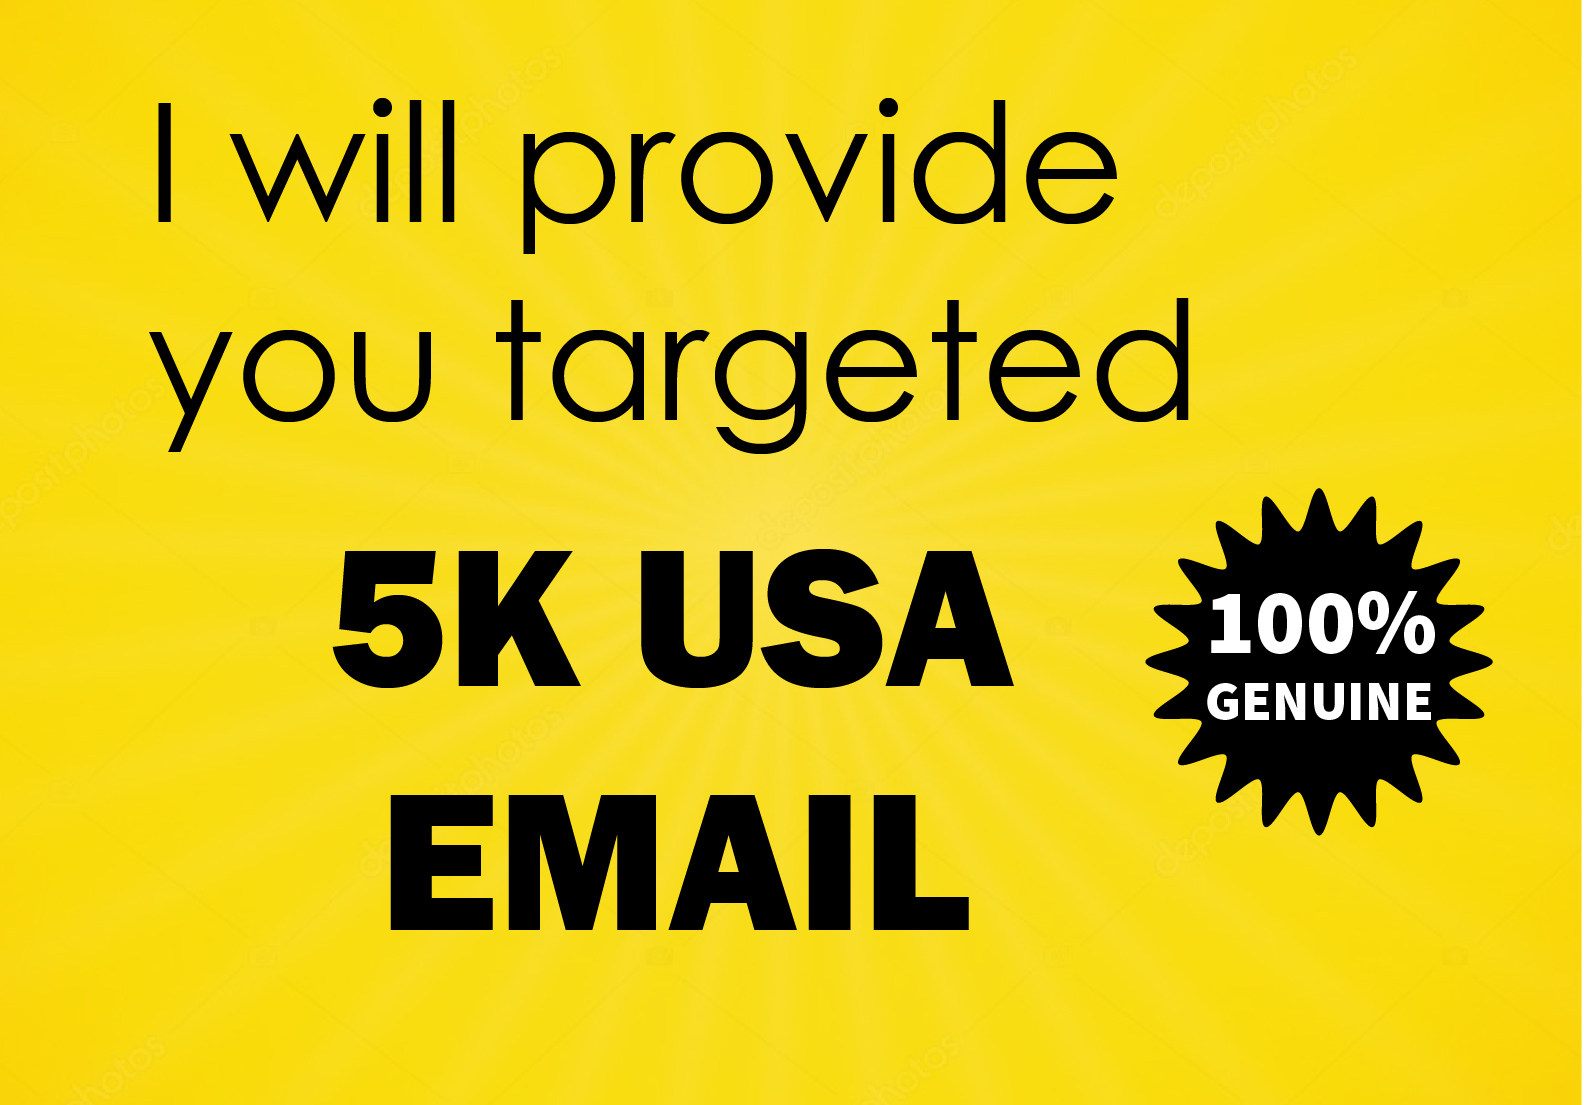 I will provide you 5k USA email list for marketing